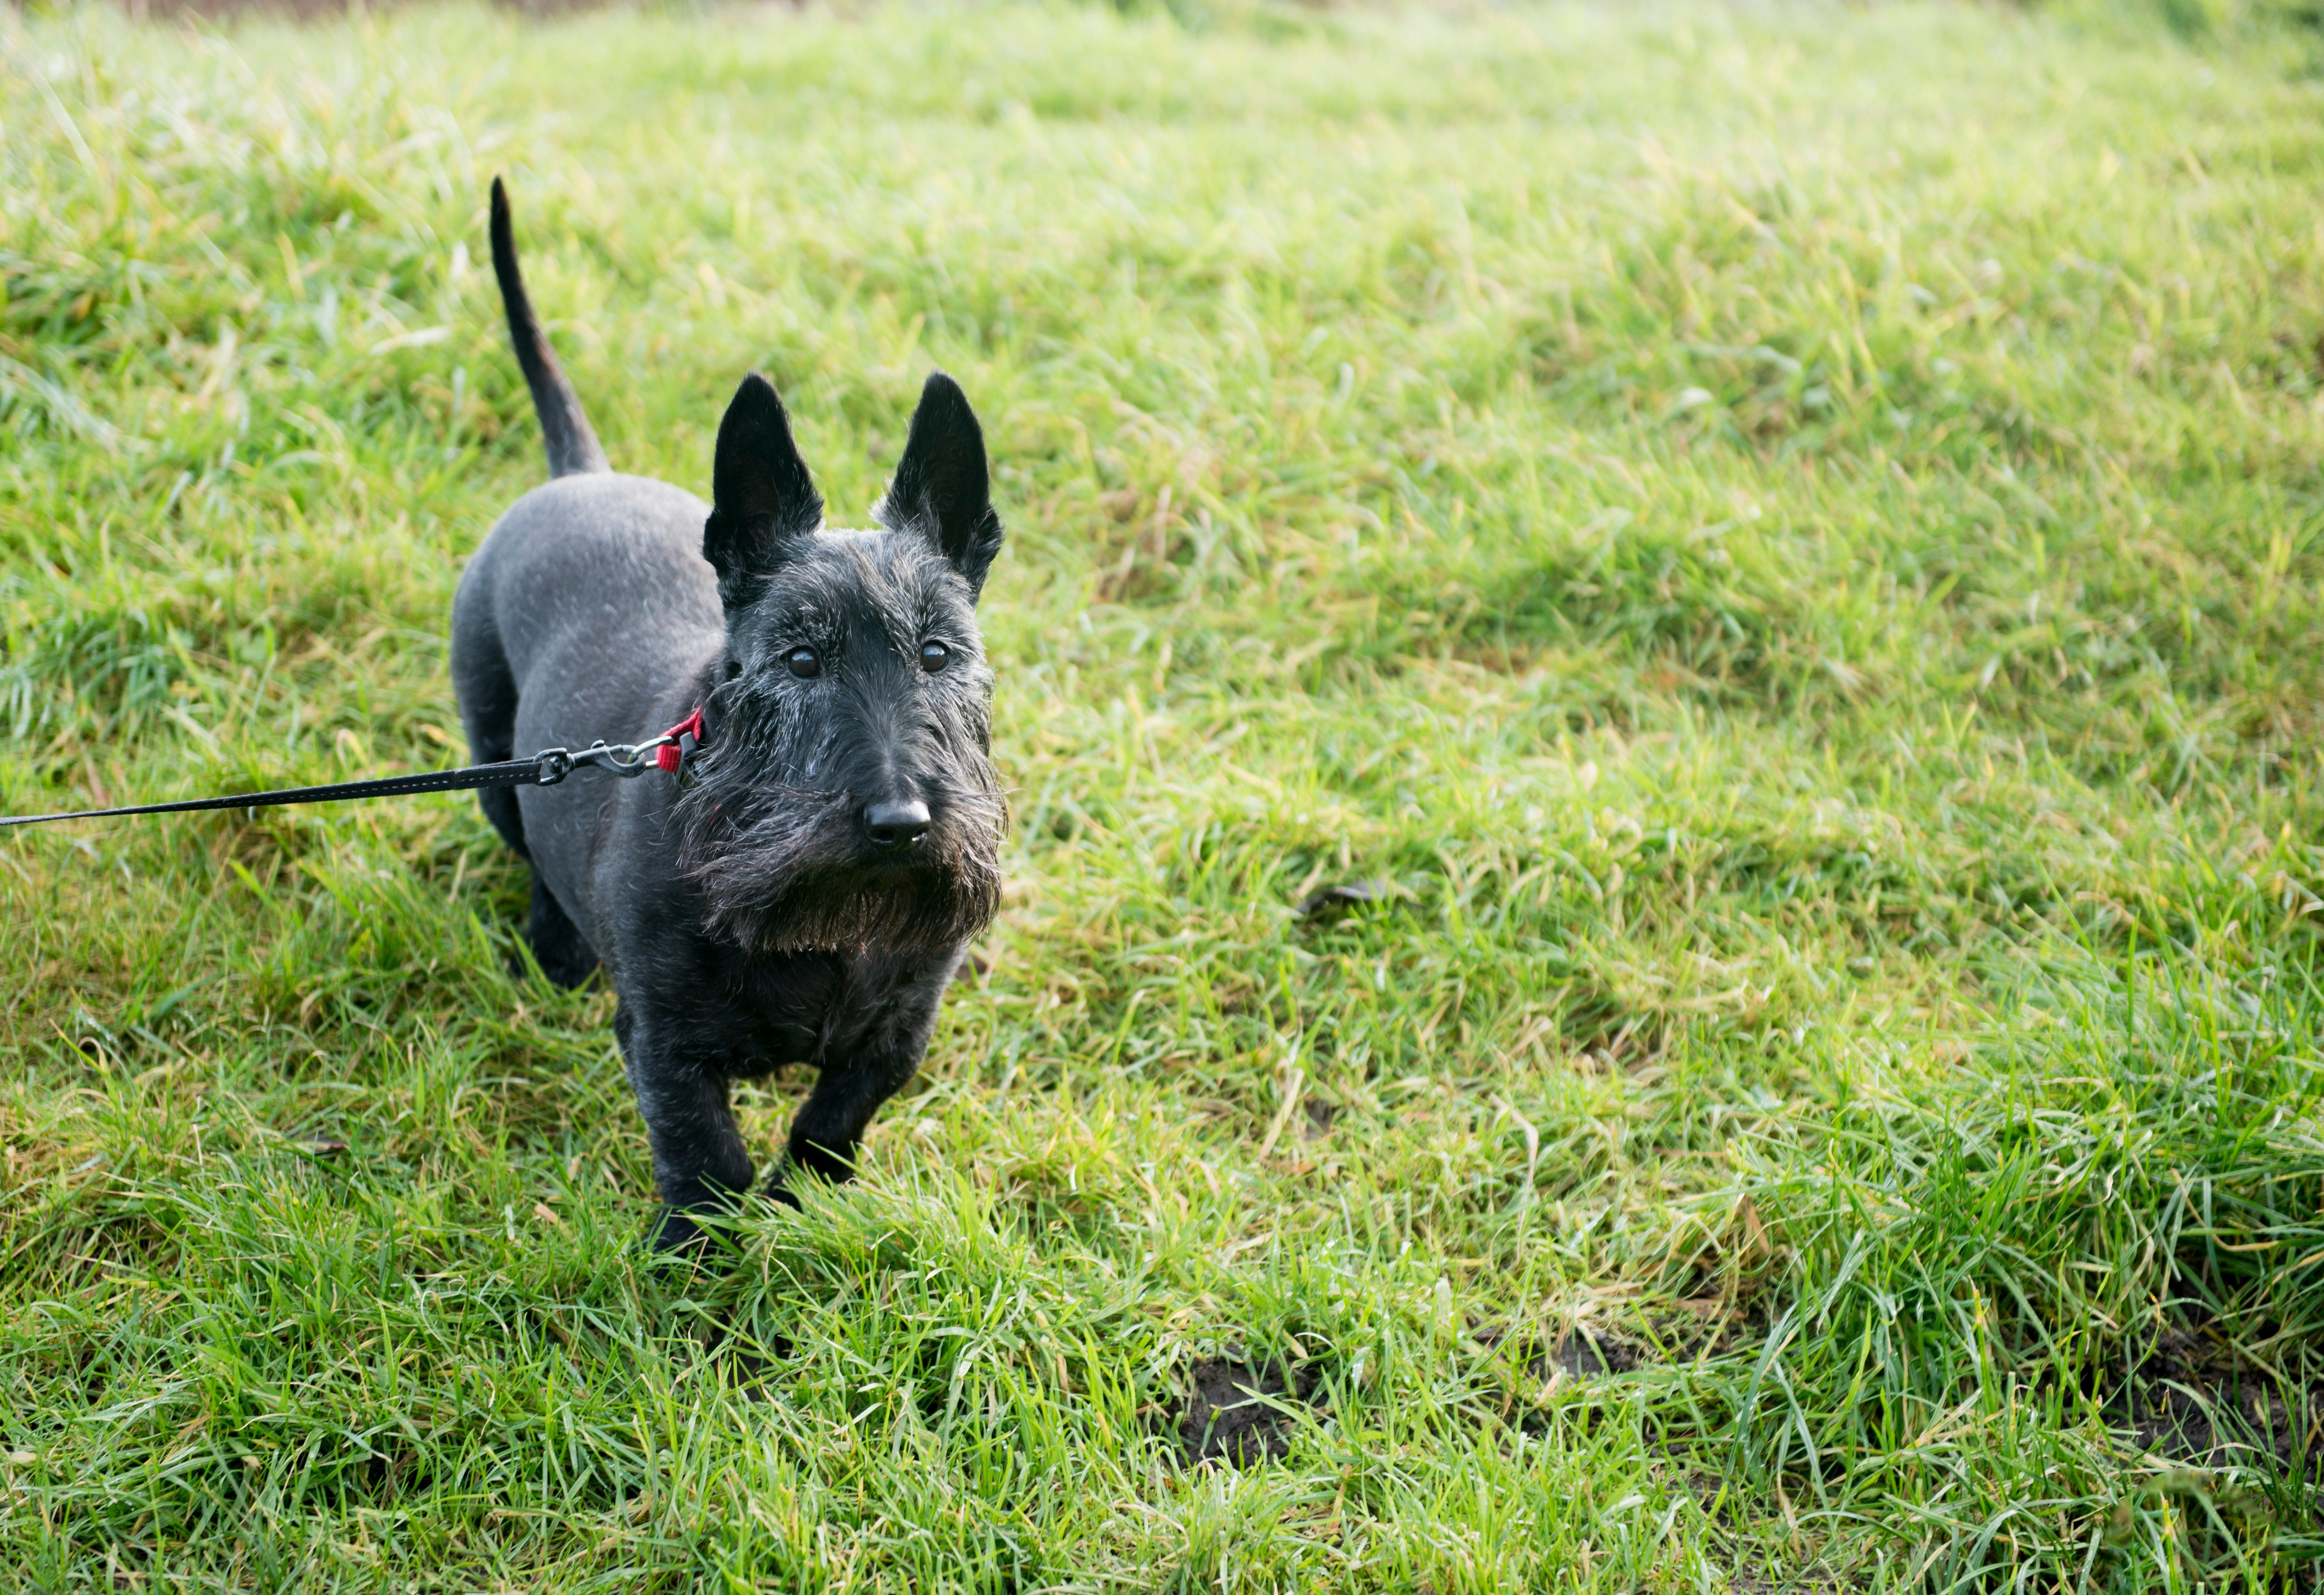 Cute black Scottish Terrier dog on green grass, taken with copy space